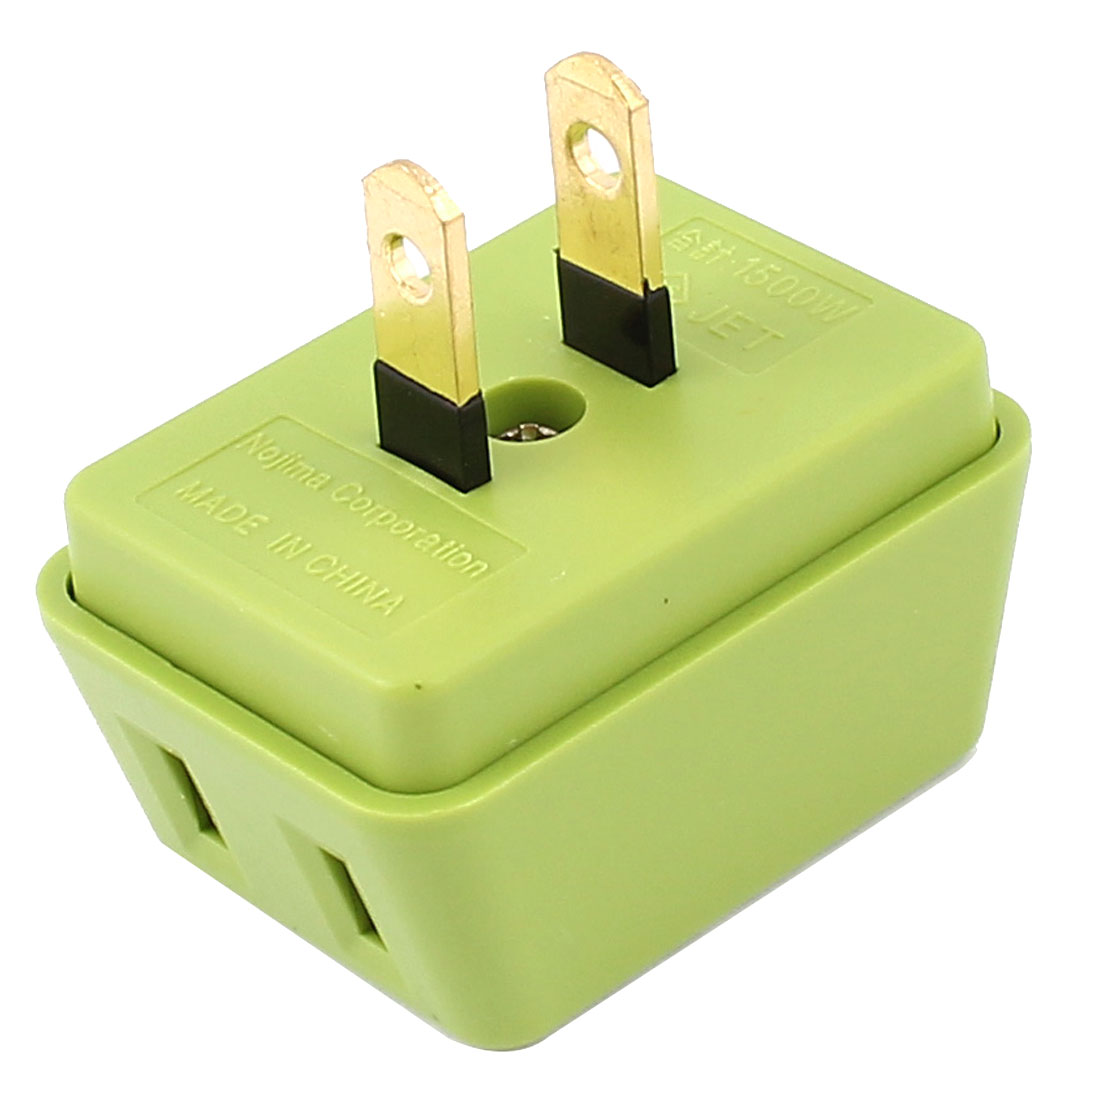 AC 125V 15A US Plug 1 to 3 Ways Power Charger Adapter Converter Socket Green